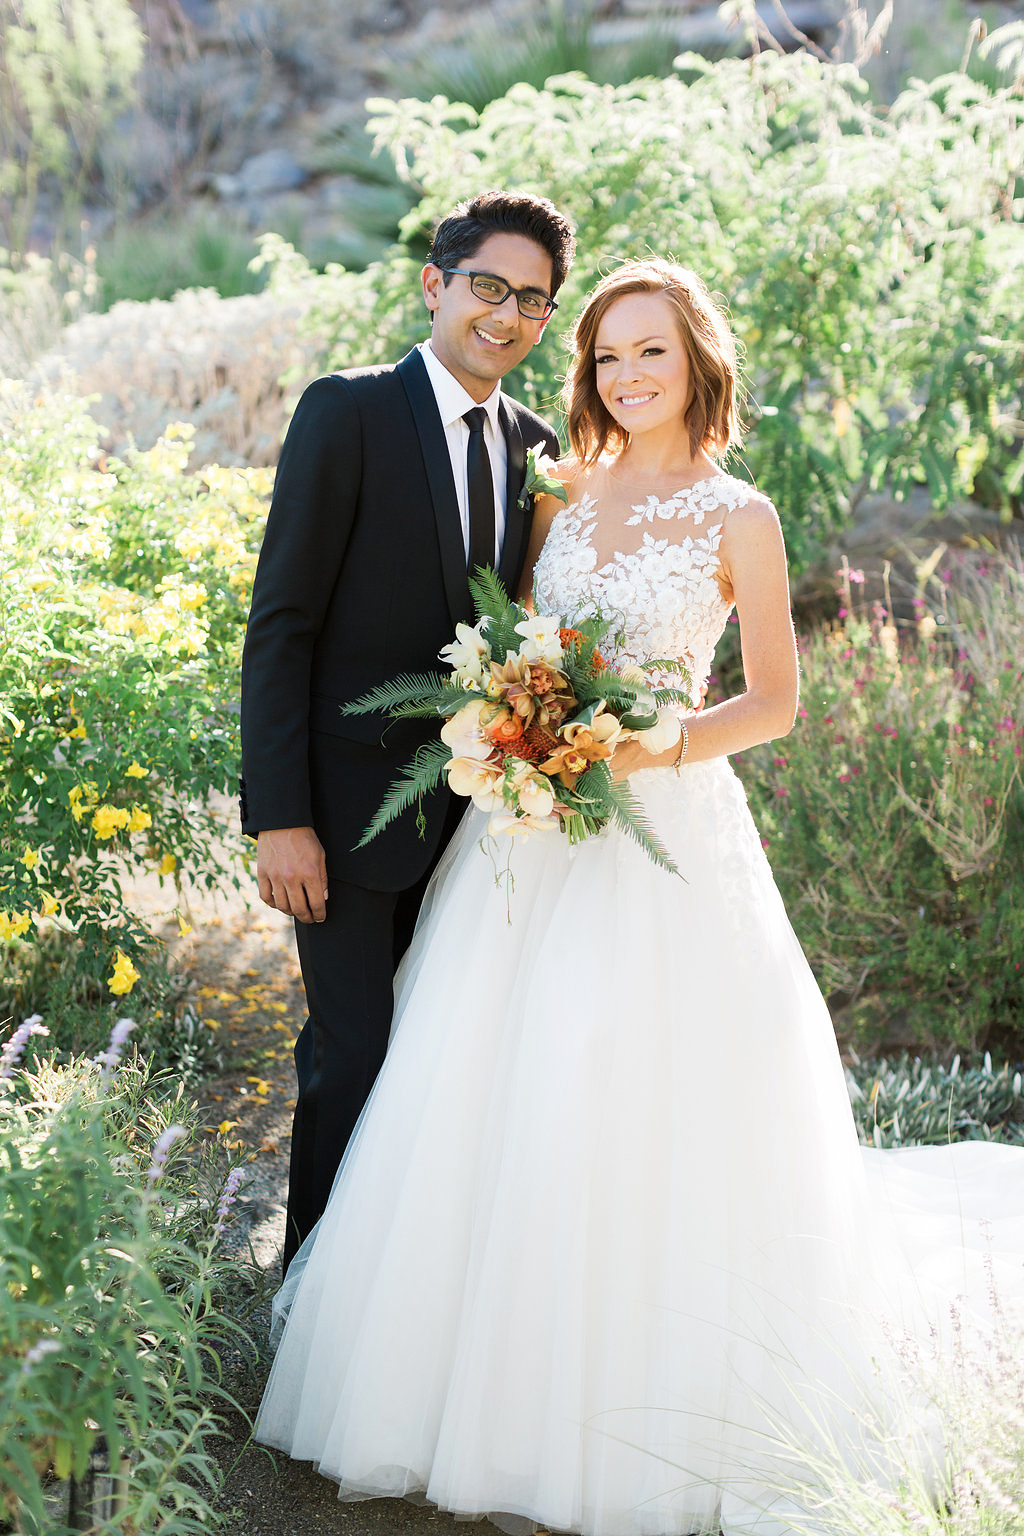 Emily and Adhir